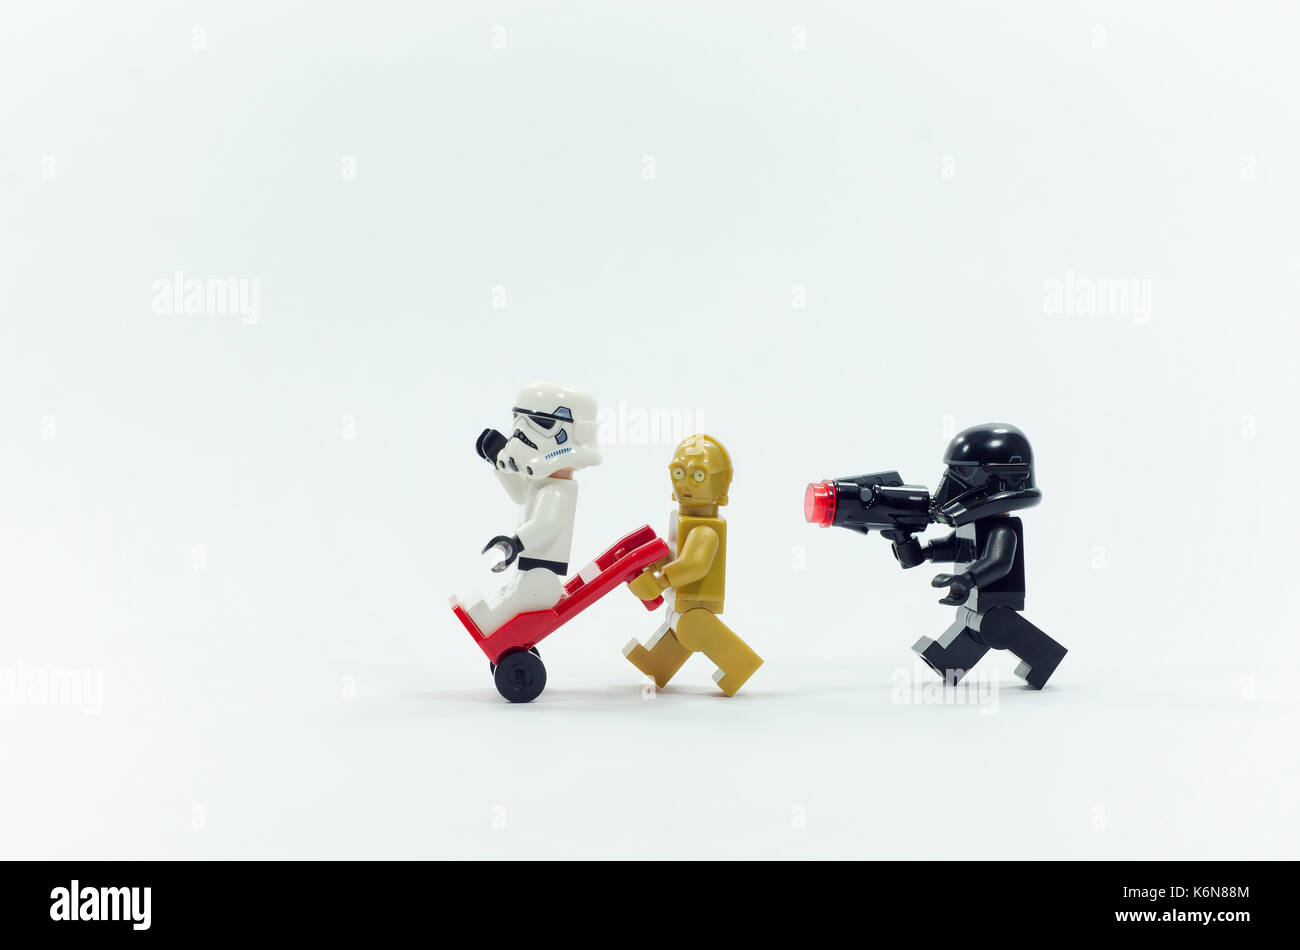 lego darth vader stock photos u0026 lego darth vader stock images alamy